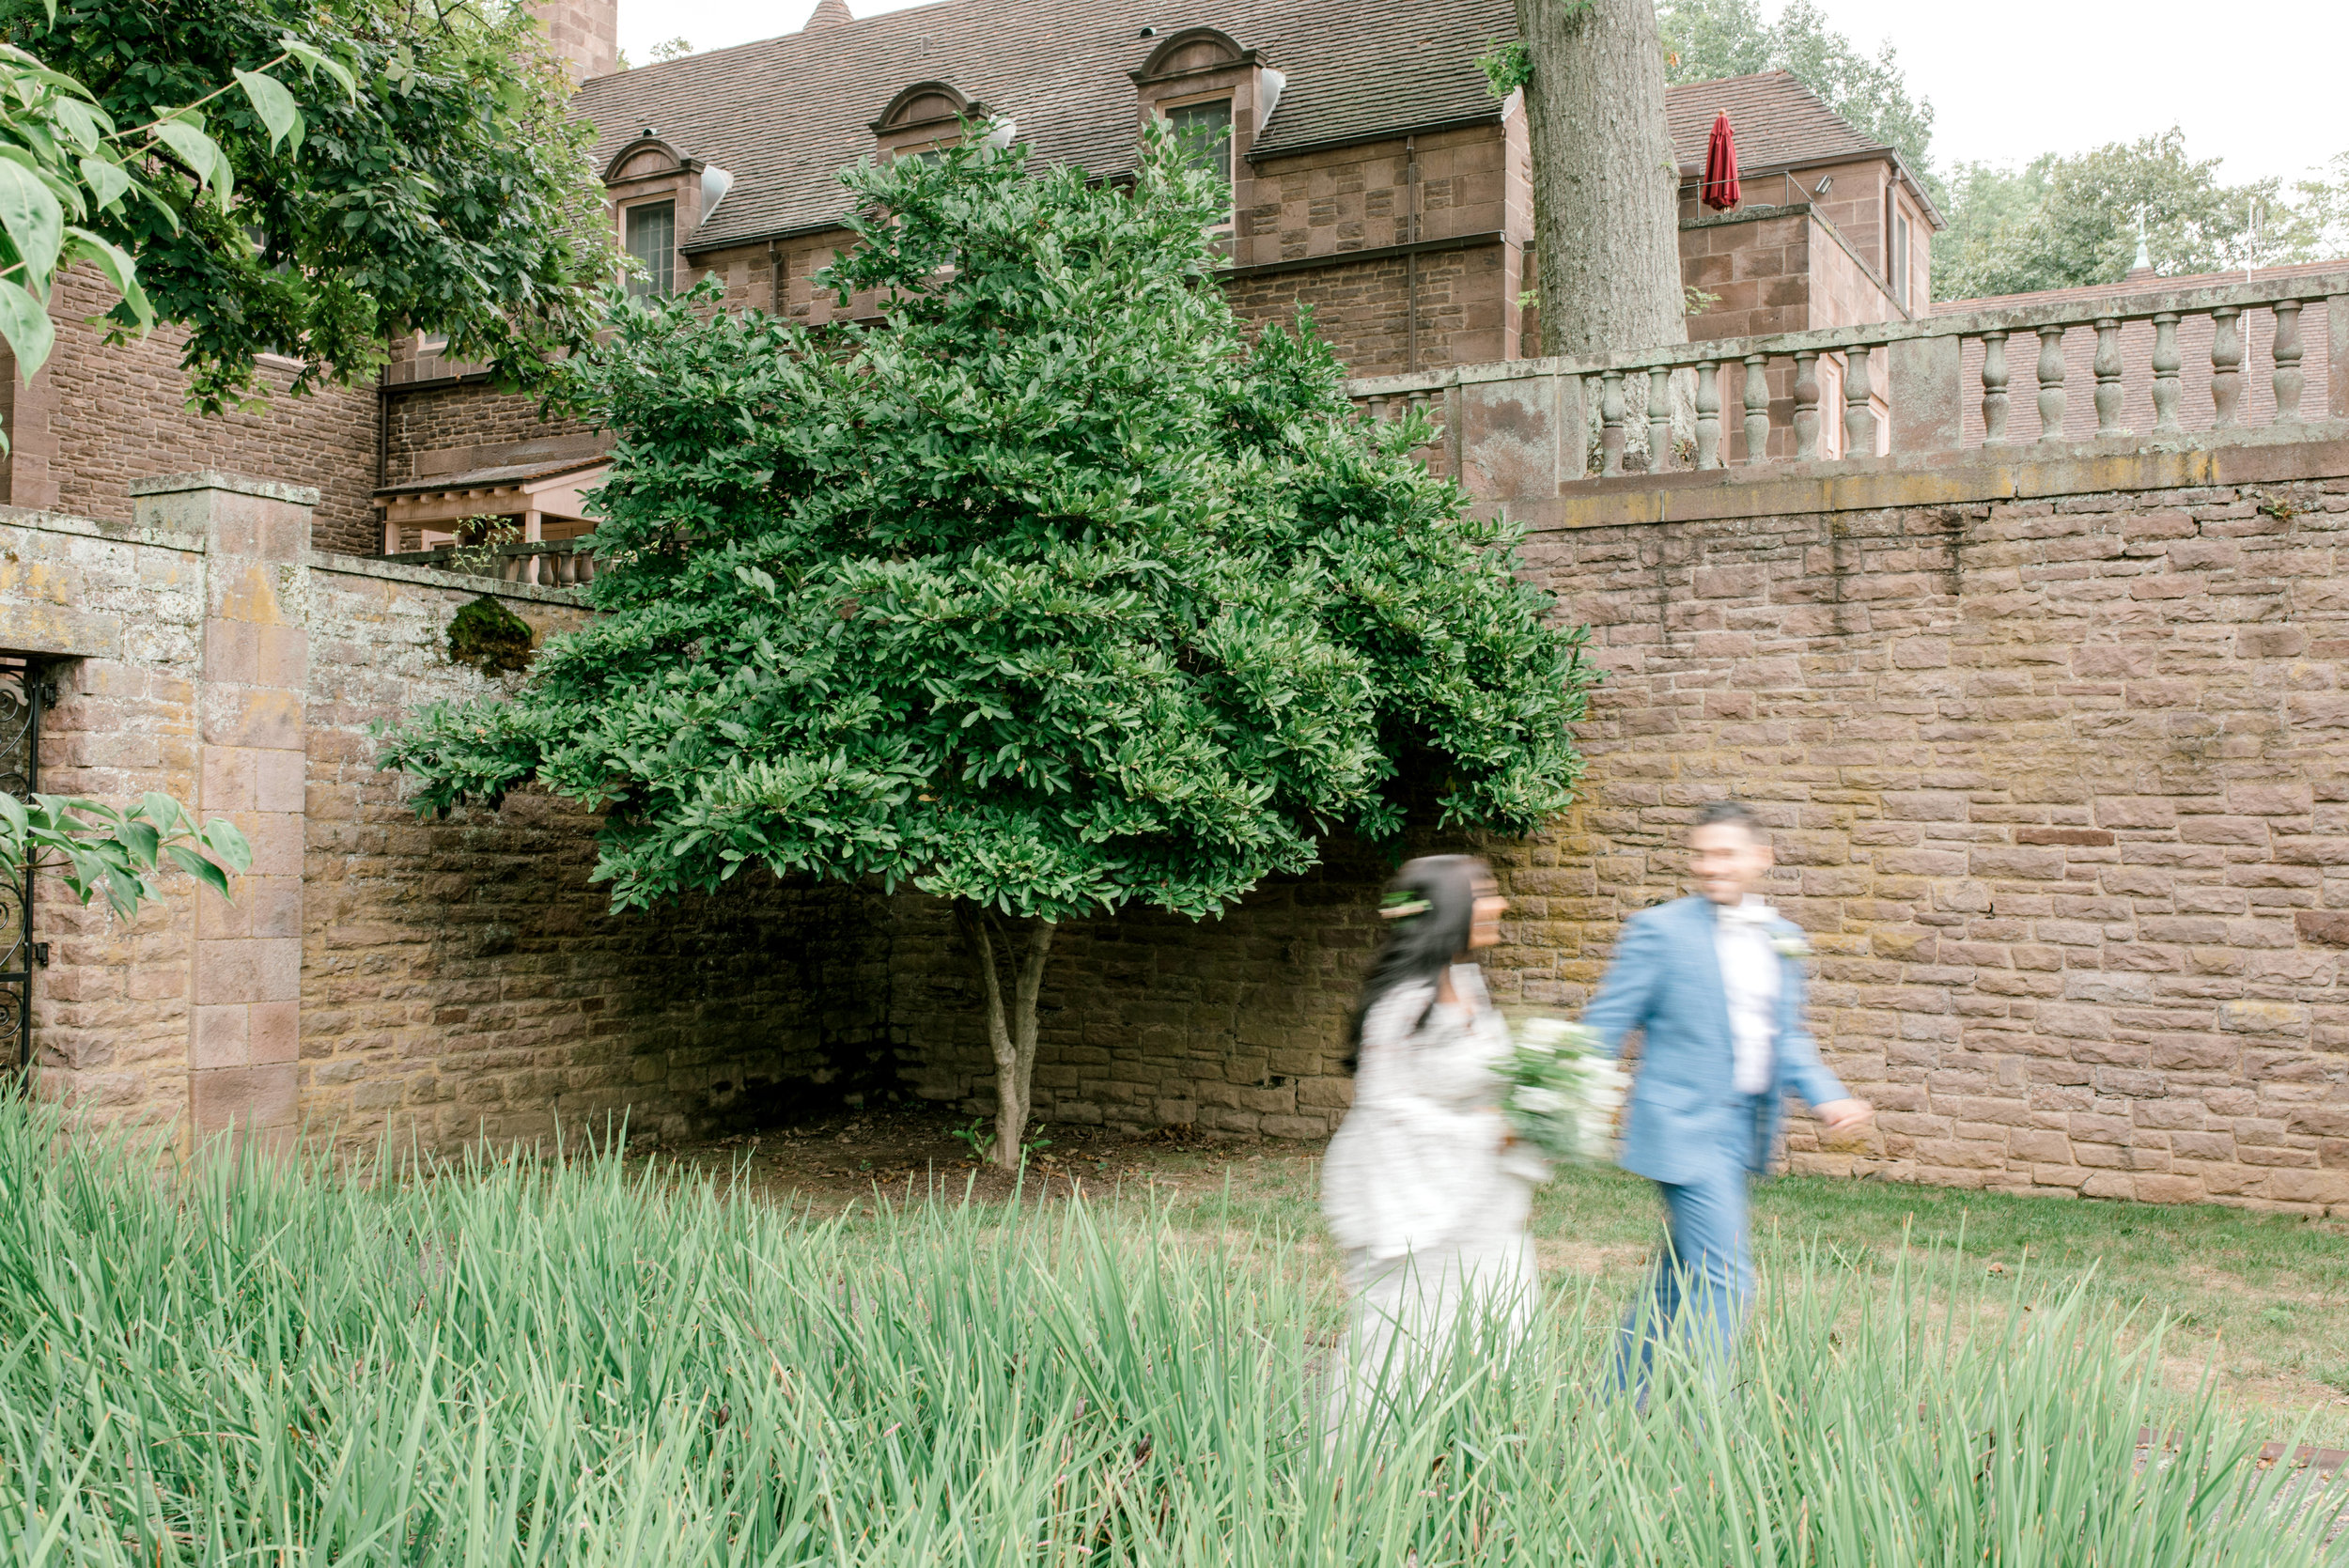 Running together through the garden, these two made a romantic moment happen at their bright boho chic Tyler Gardens wedding in Bucks County